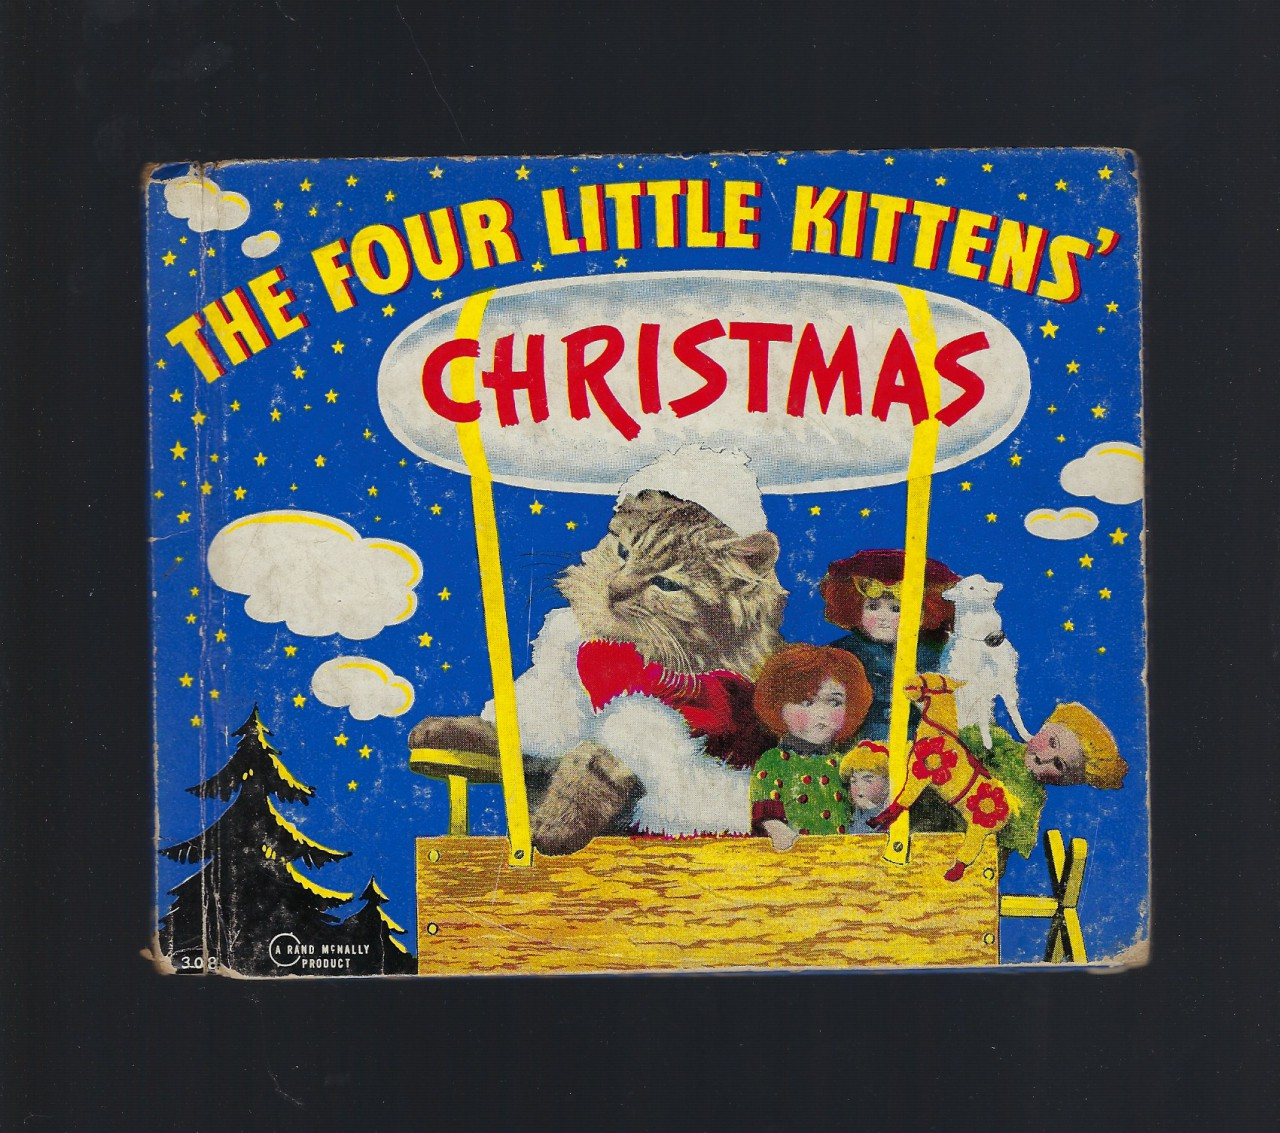 Image for The Four Little Kittens' Christmas 1939 Harry W. Frees